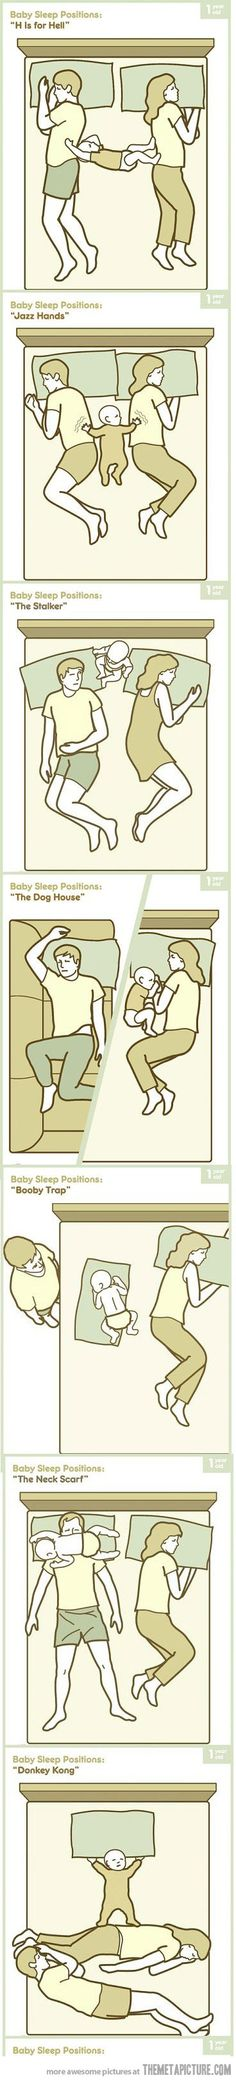 Baby sleeping positions...Hilarious